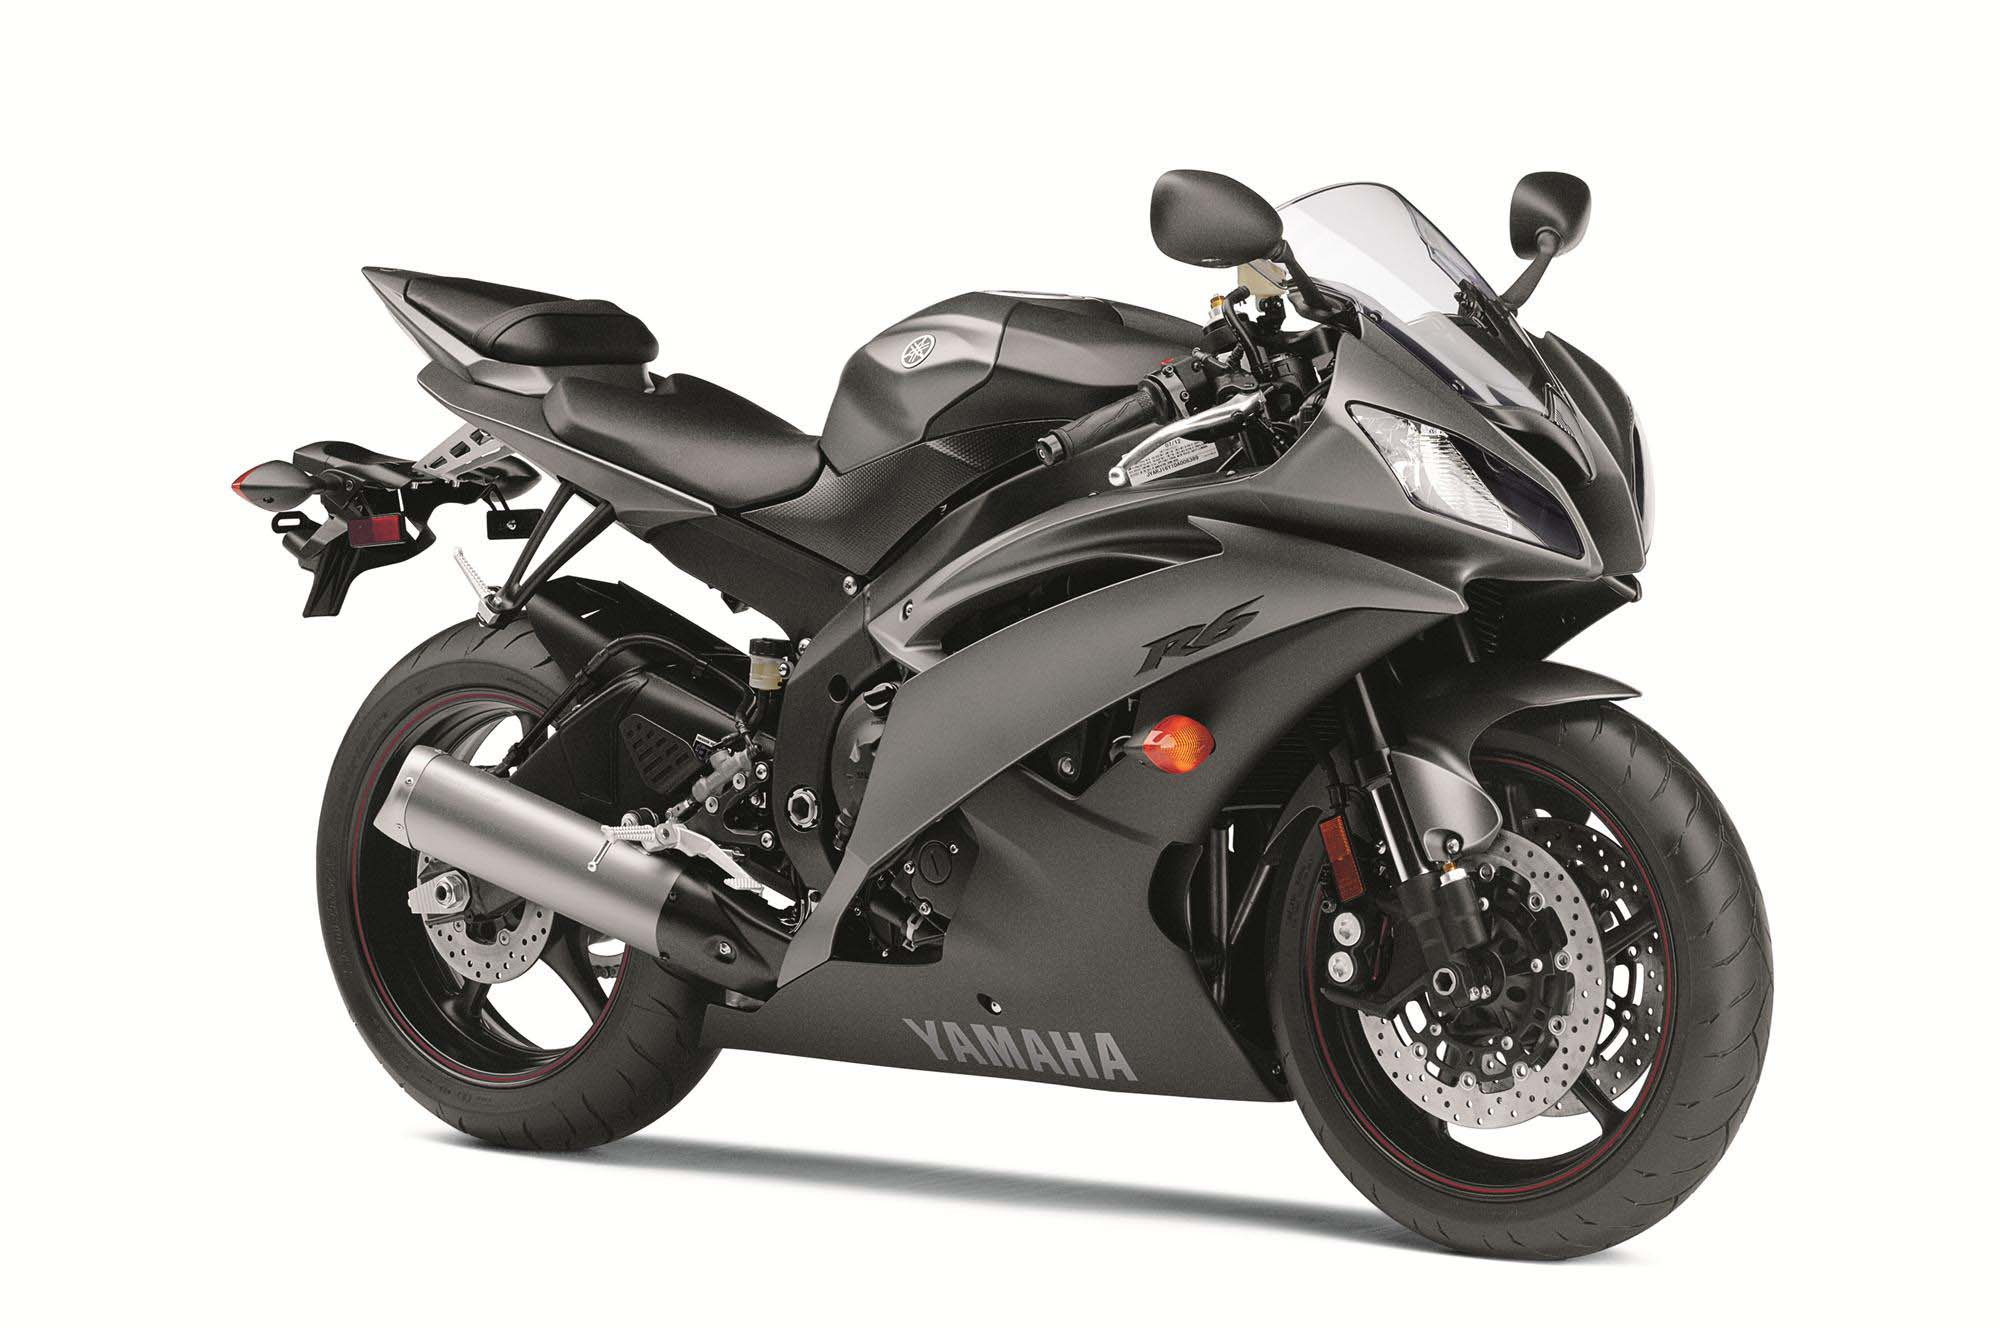 and here is the 2013 yamaha yzf r6 asphalt rubber